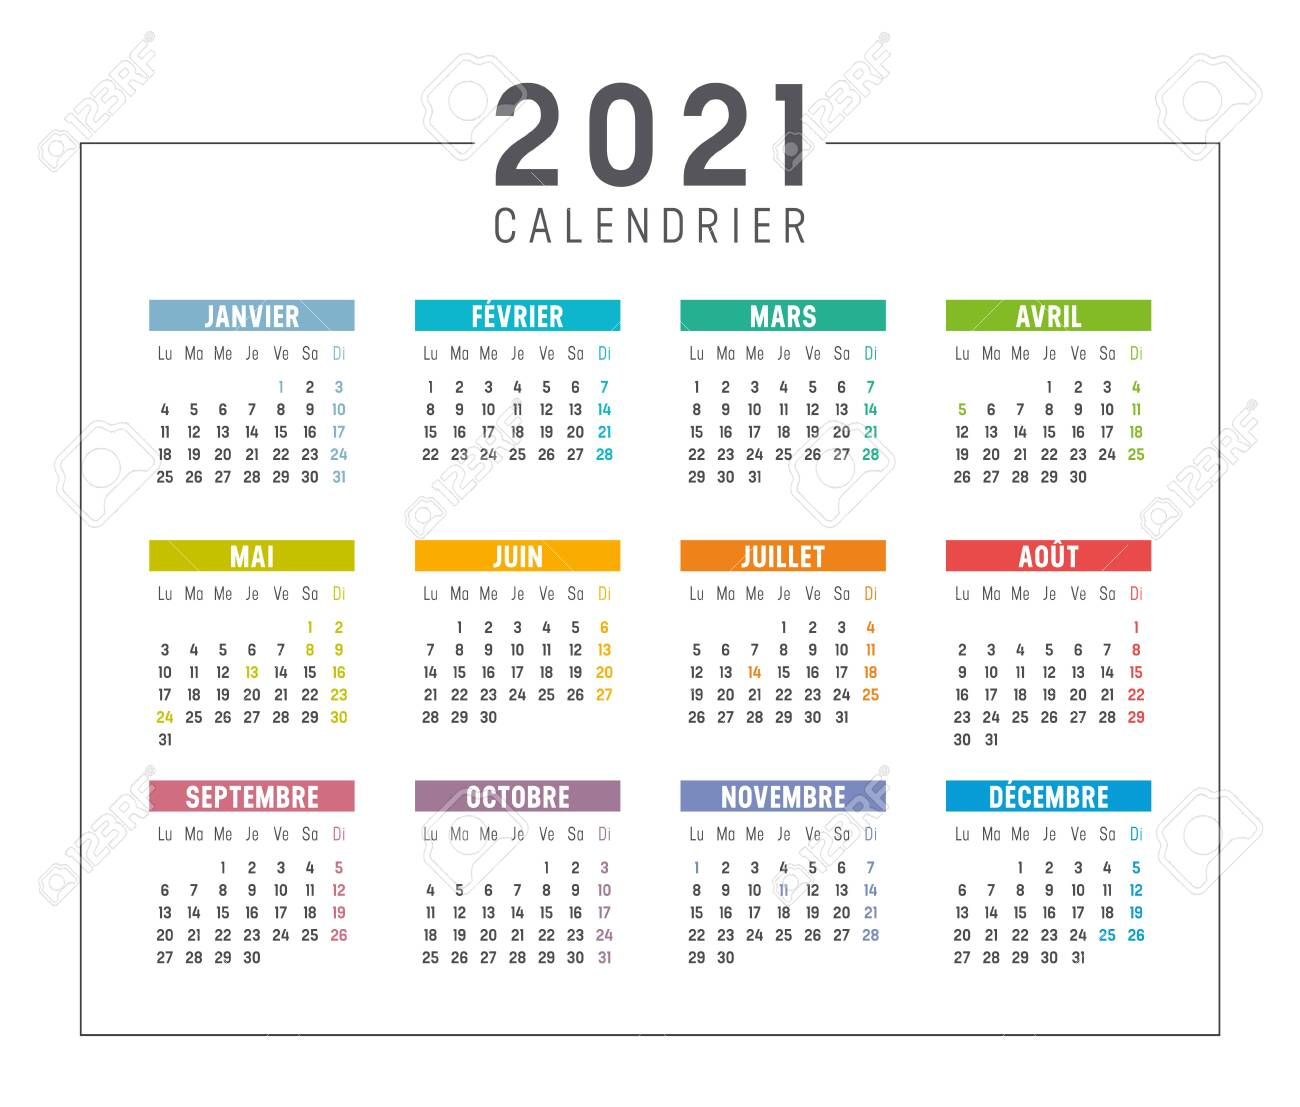 Year 2021 Calendar Colorful Year 2021 Calendar Isolated, In French Language, On